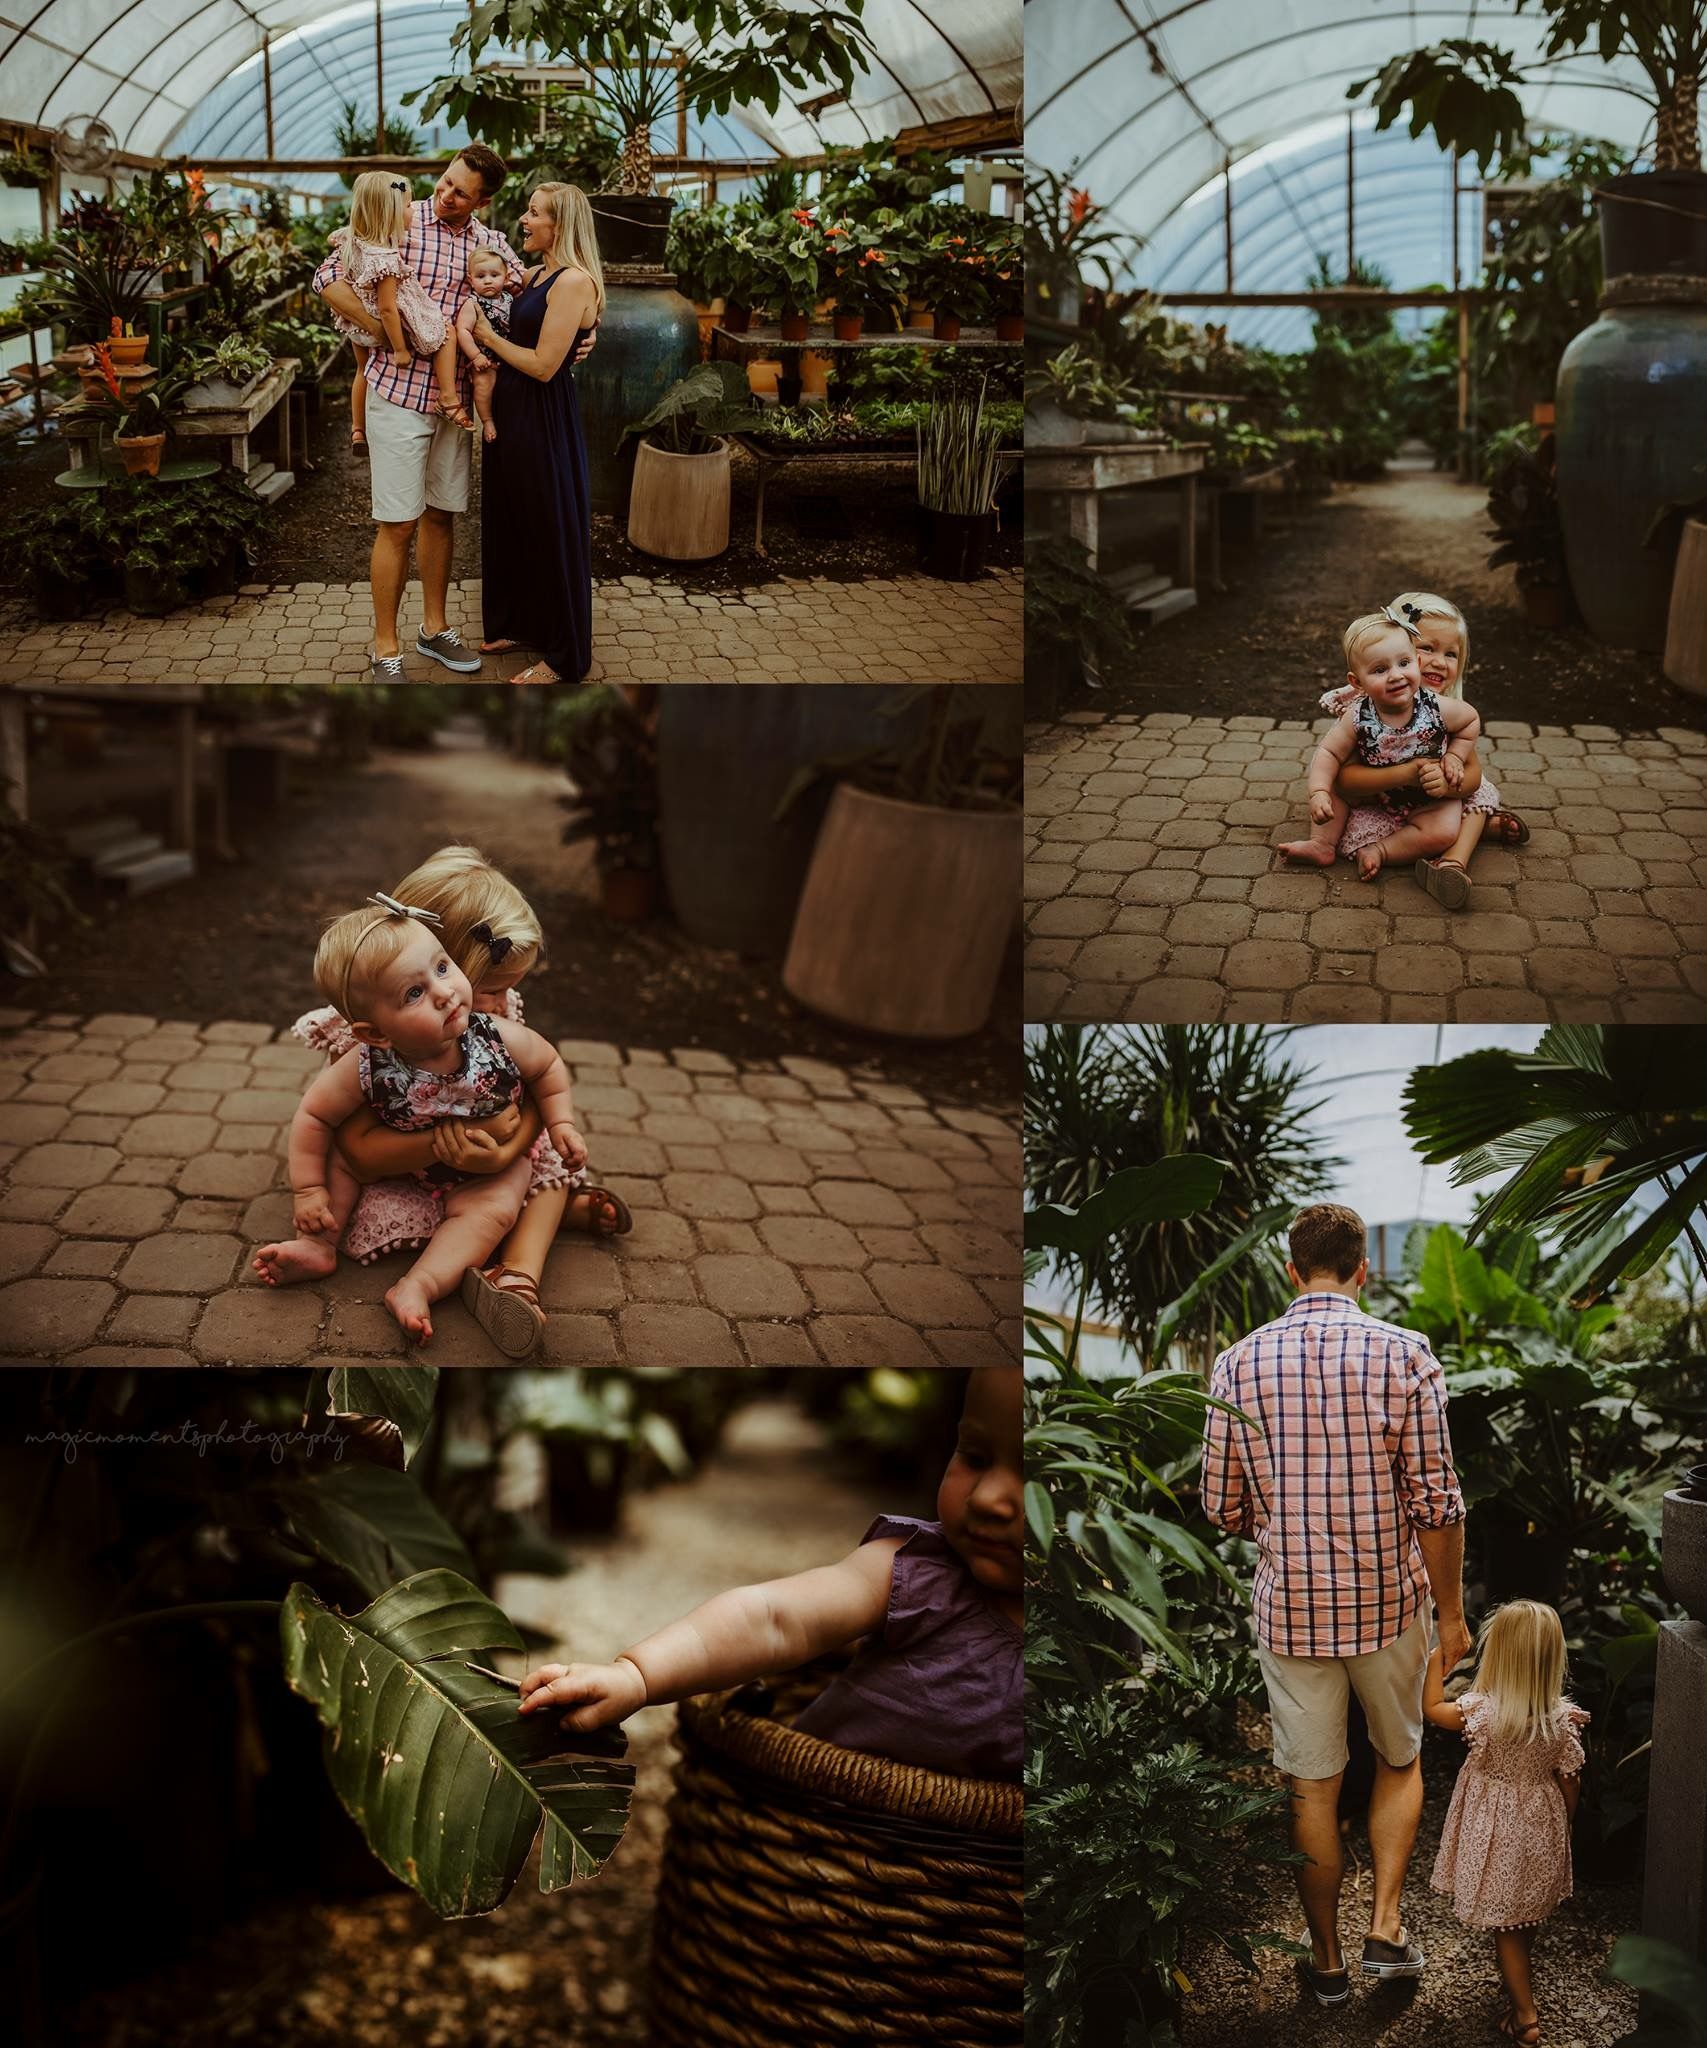 Greenhouse Photoshoot Greenery Family